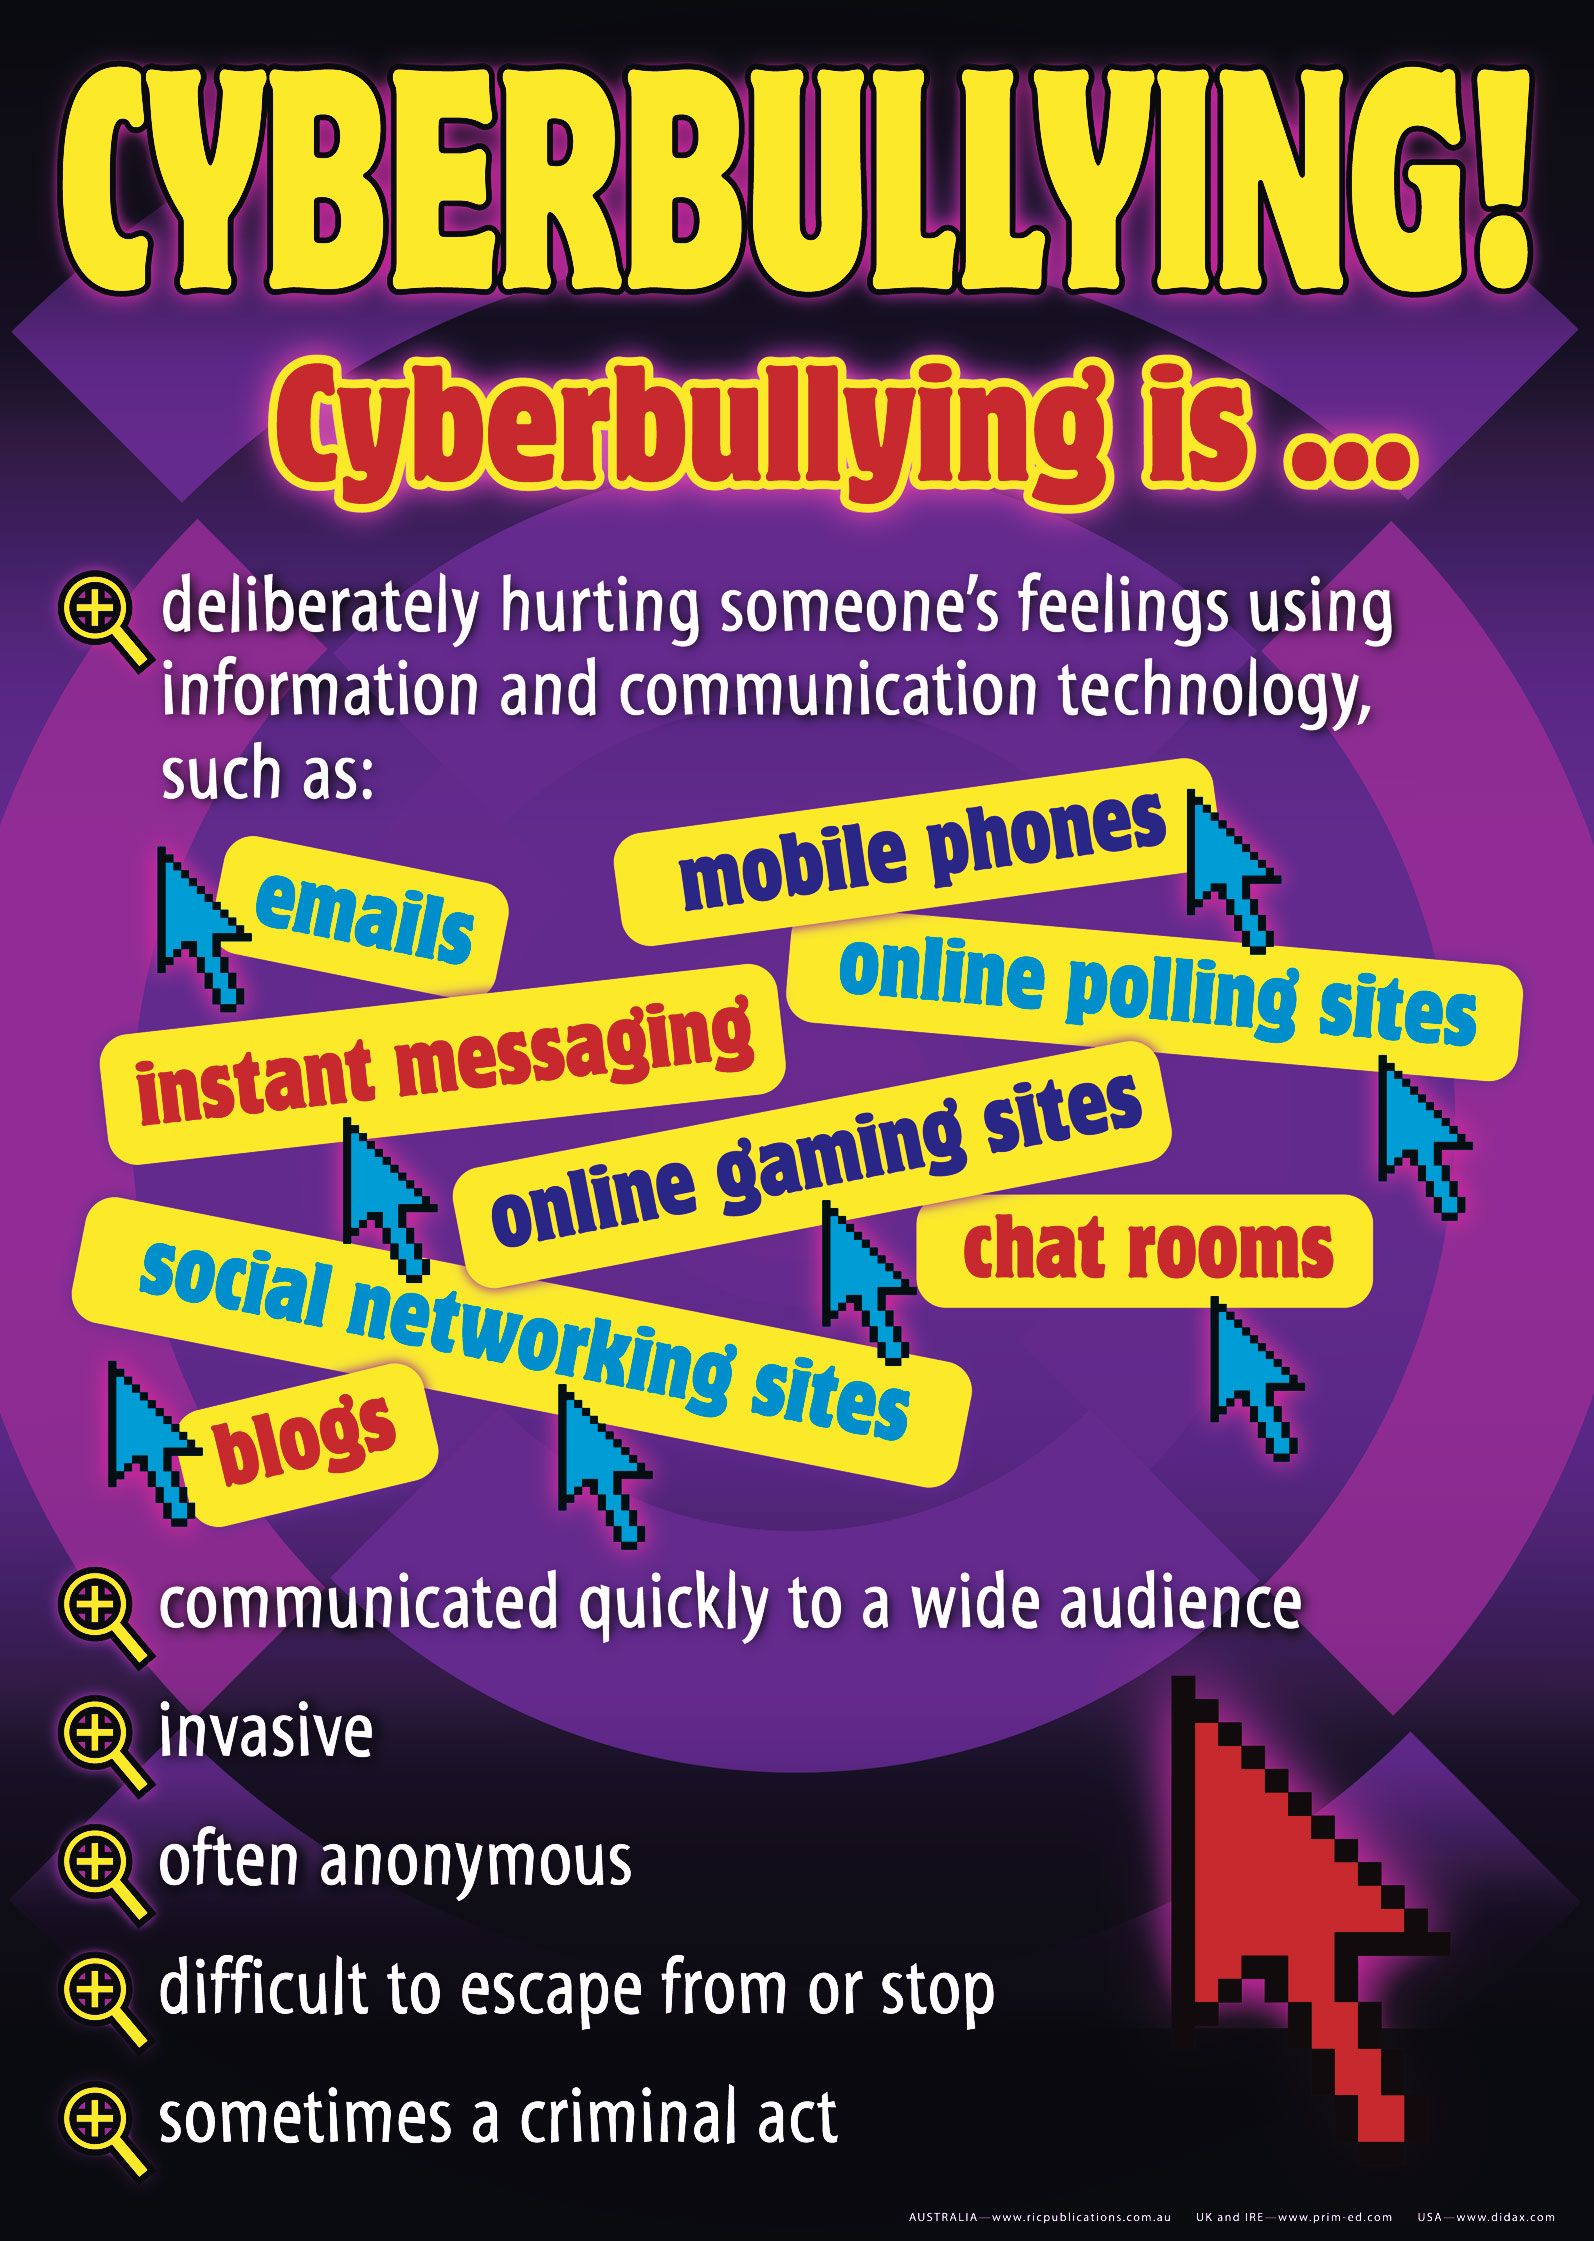 E safety poster designs - Cyber Bullying Poster Series Stimulate Worthwhile Discussion On This Highly Topical Problem The Text Has Been Carefully Chosen To Promote Open Ended